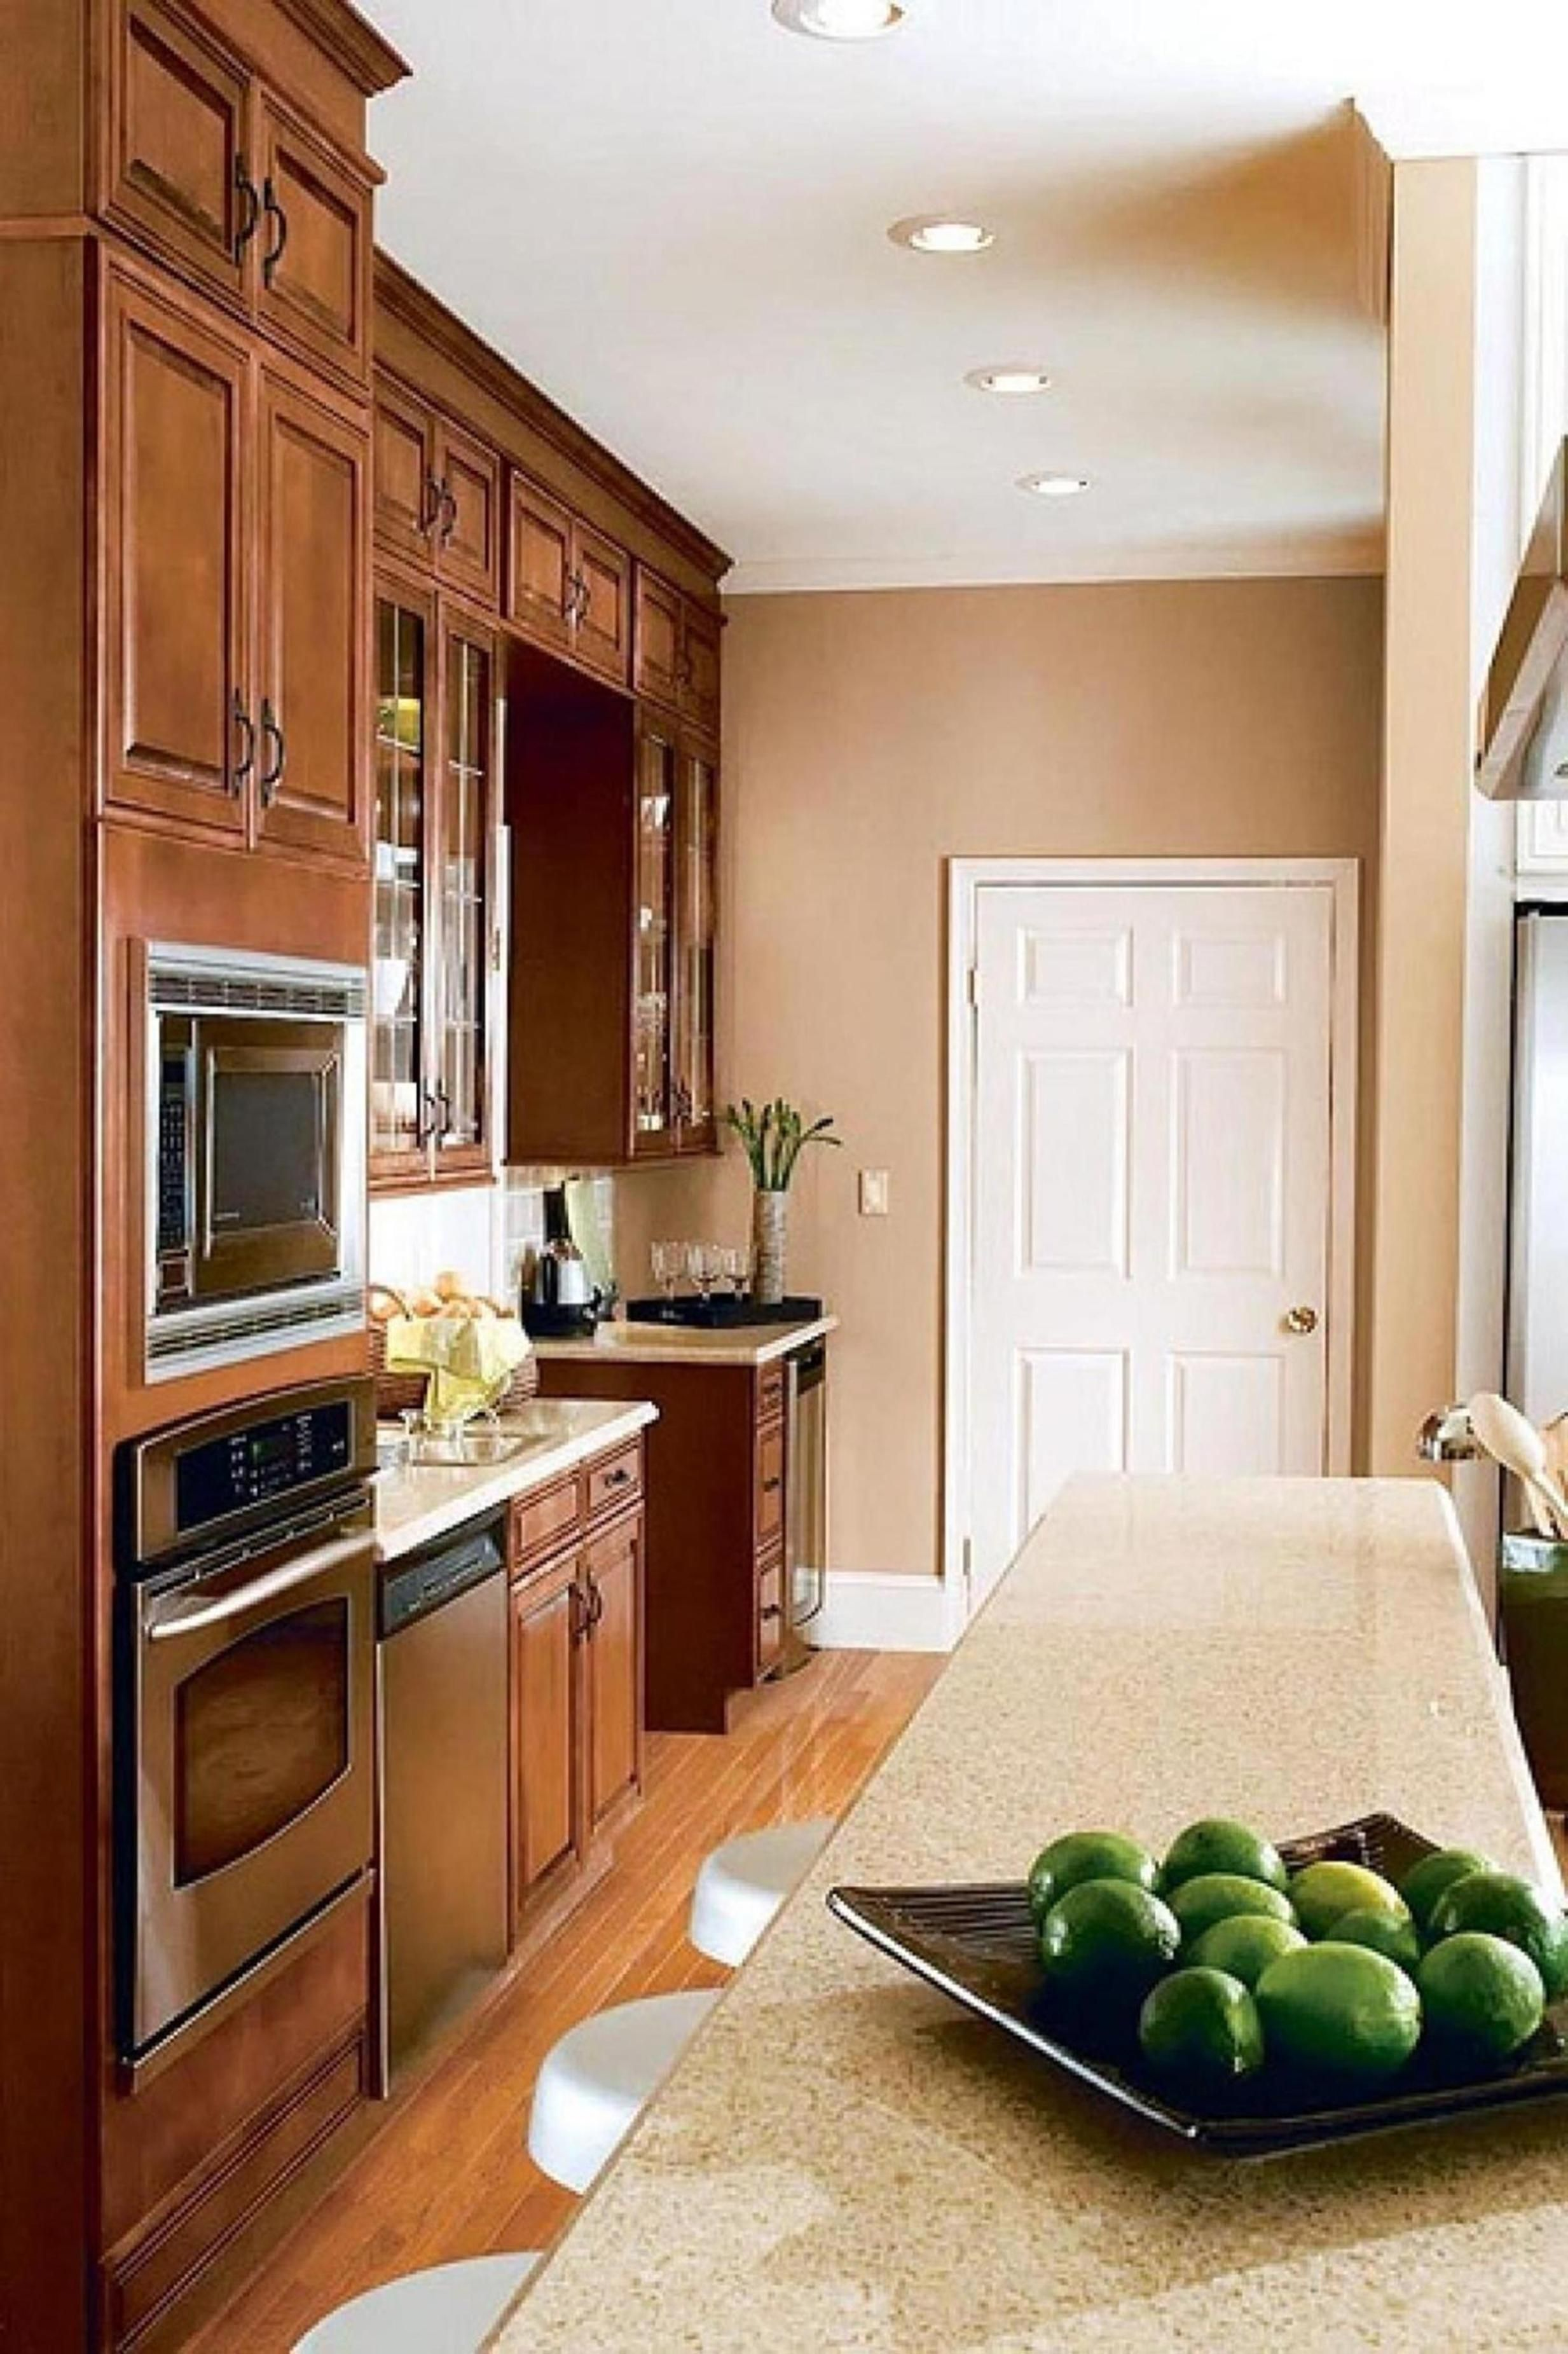 20 Perfect Kitchen Wall Colors With Oak Cabinets For 2019 1 Kitchen Wall Colors Paint For Kitchen Walls Oak Kitchen Cabinets Wall Color